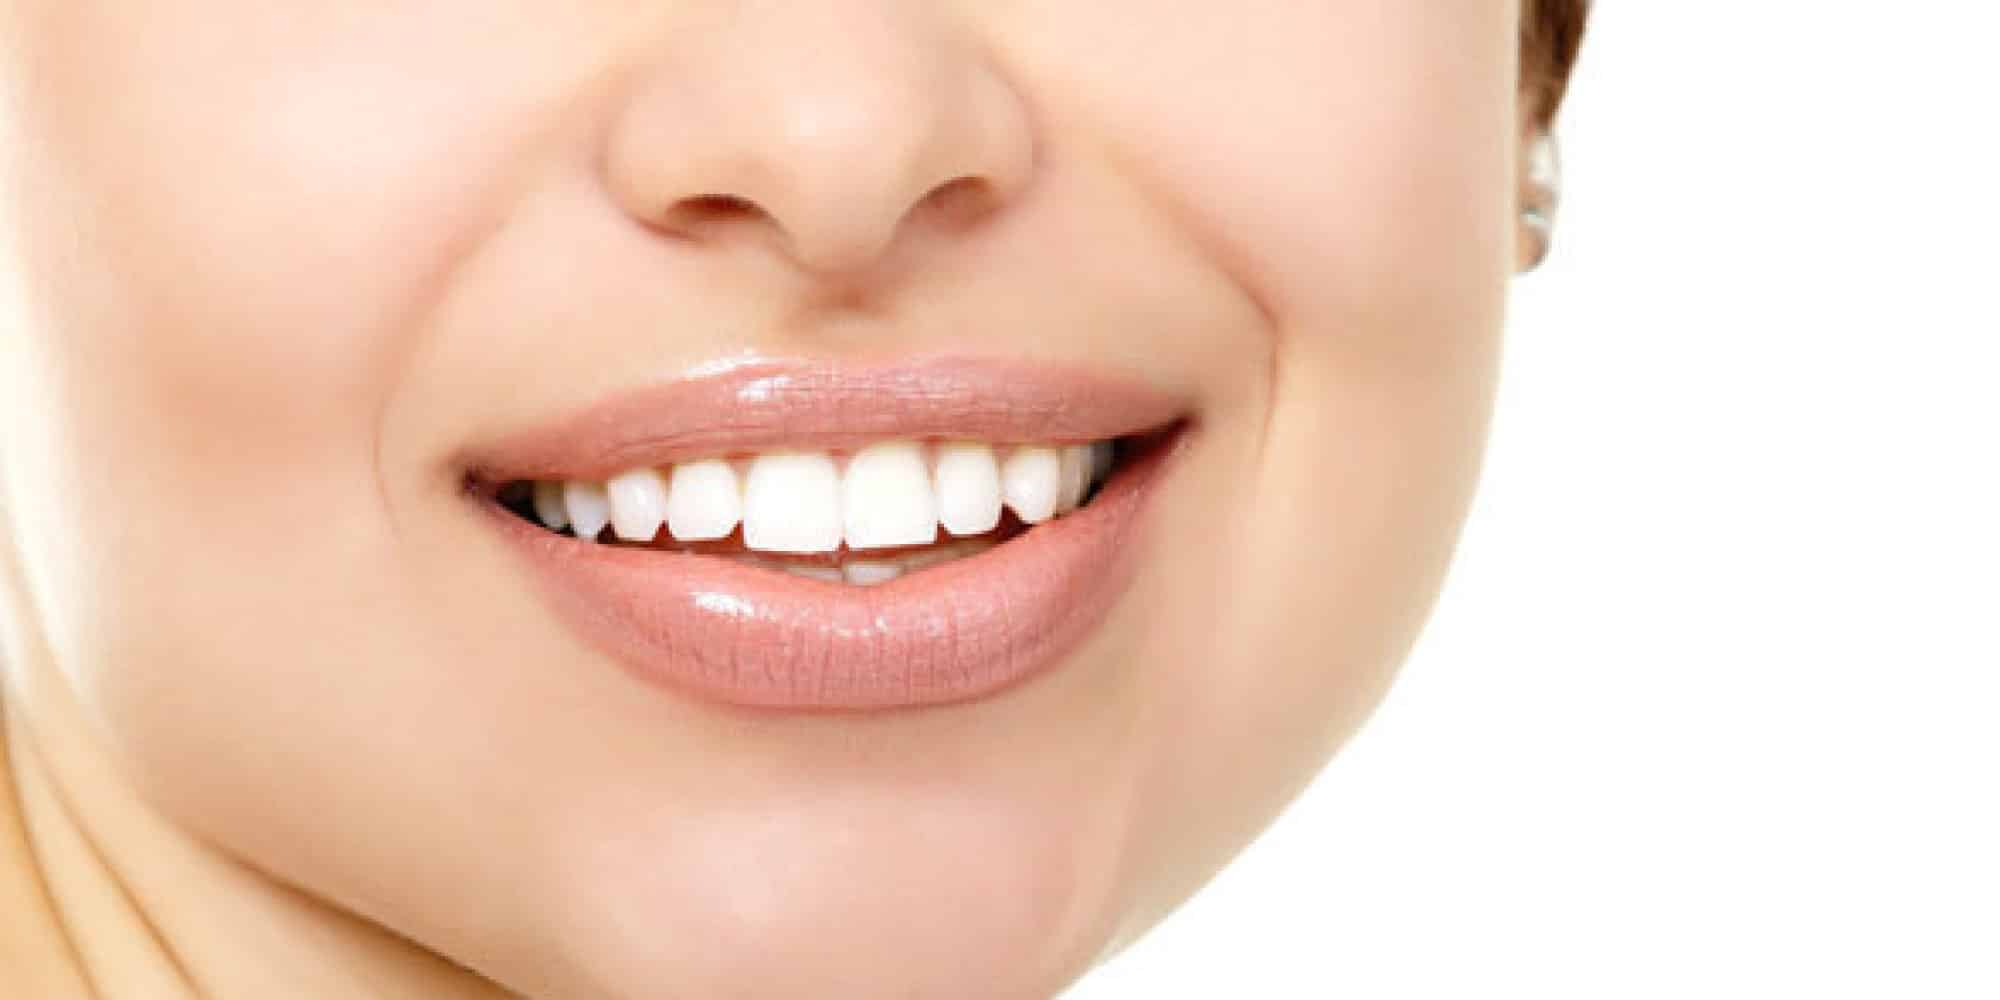 Cosmetic Dentistry Prices & Insurance Information